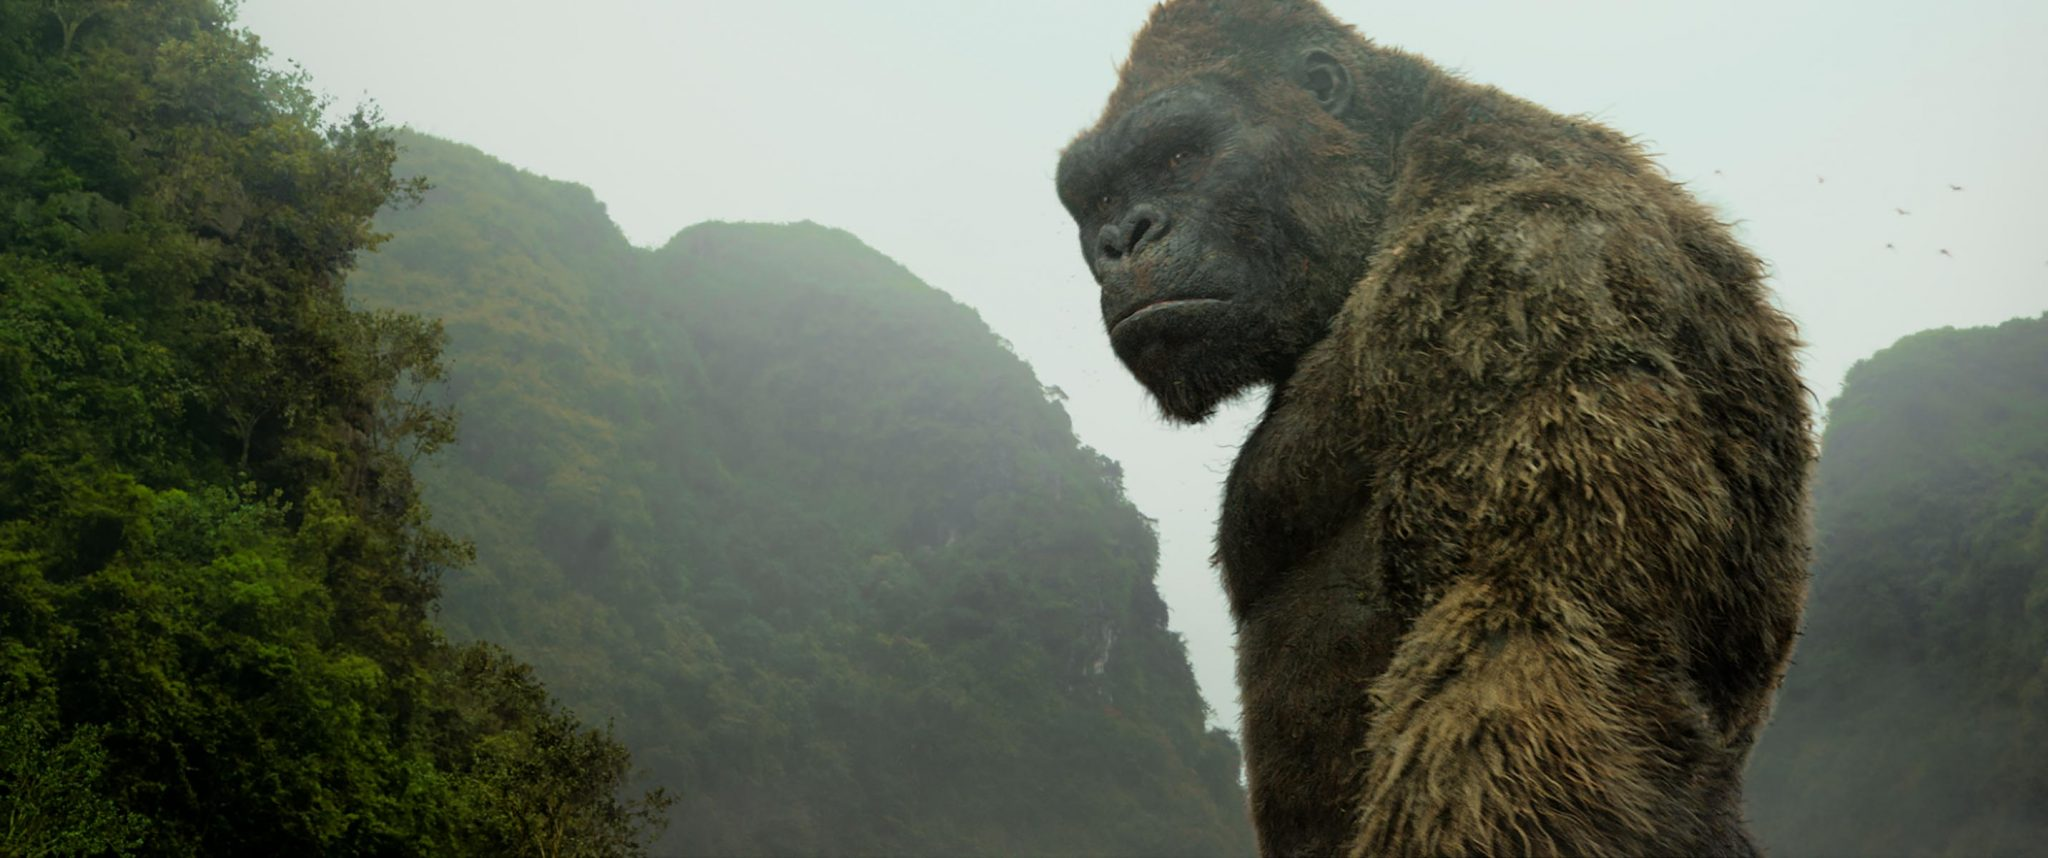 kong-skull-island-box-office